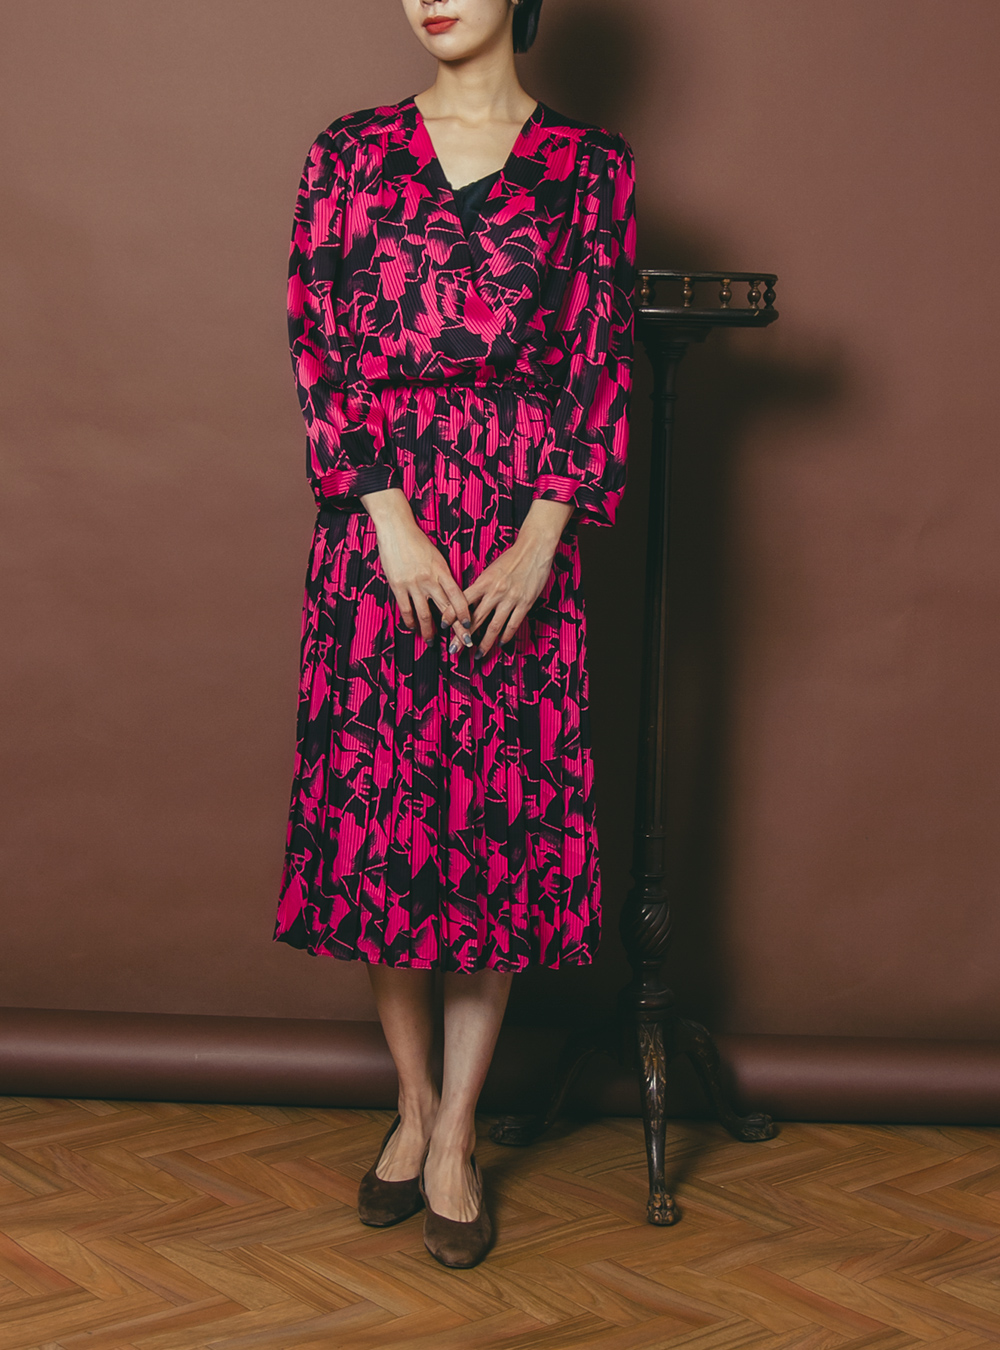 Pink × Black Flower Design Dress